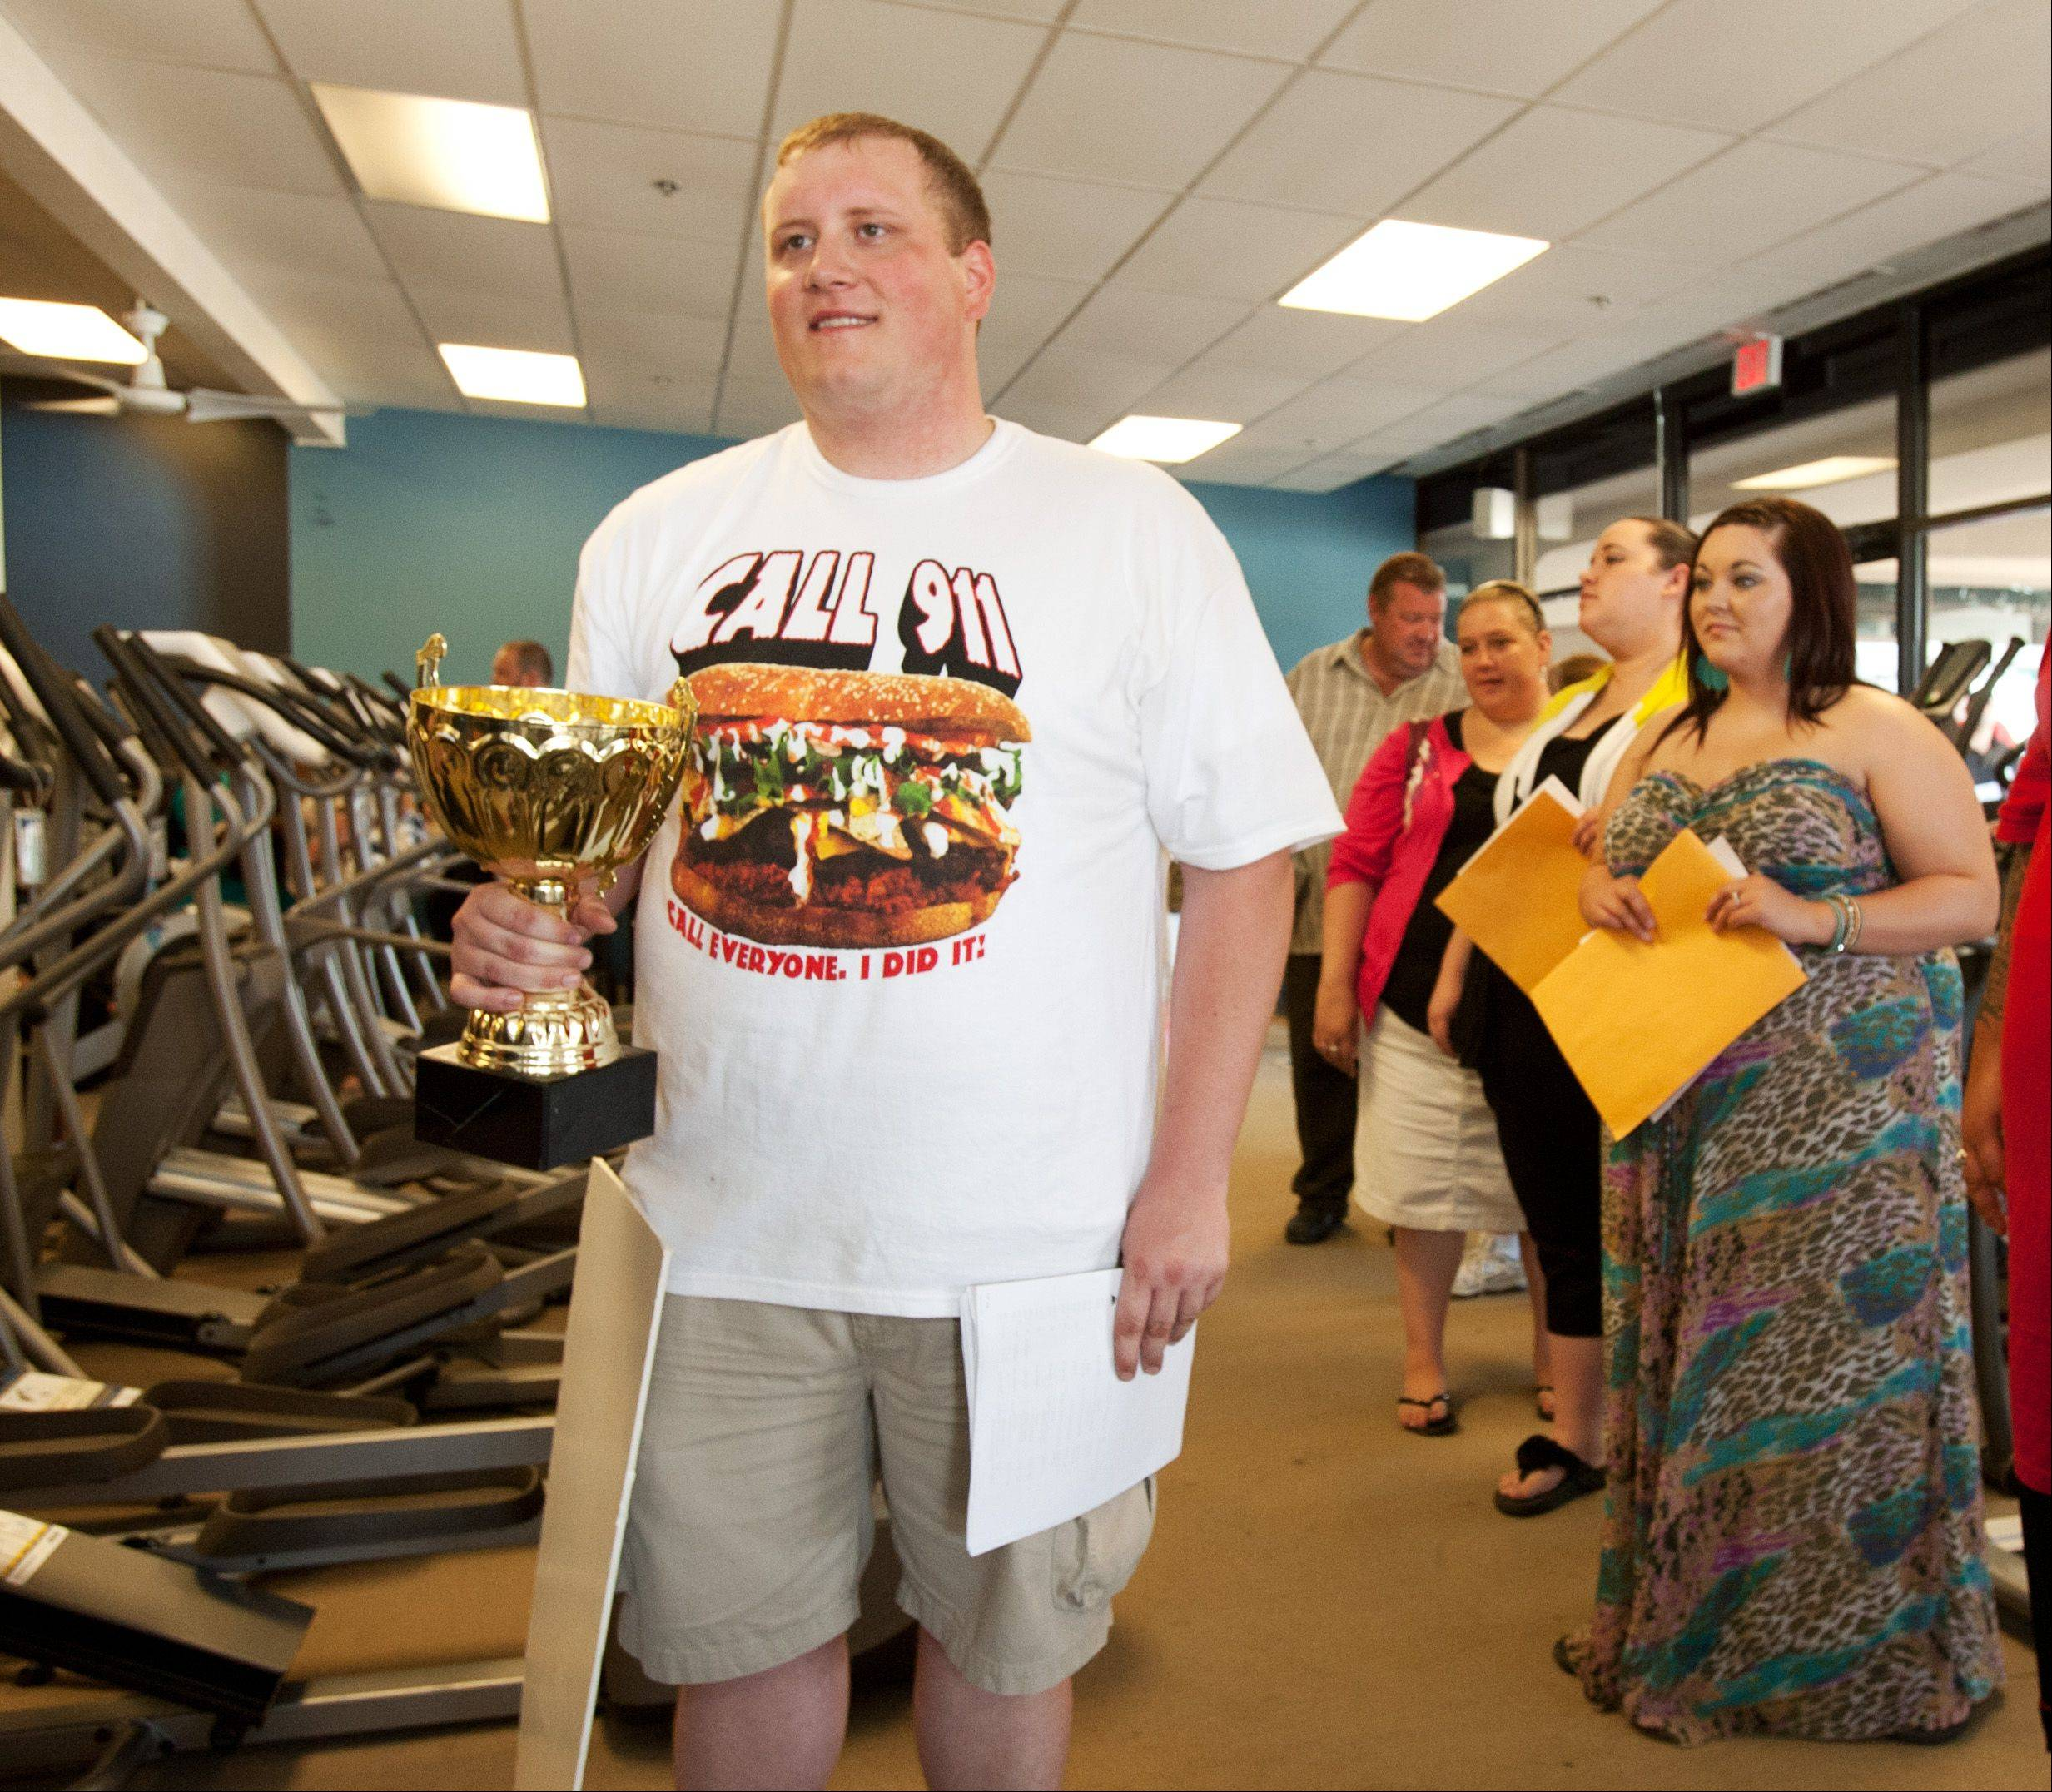 "Former professional eater Jacob Larry of Chicago was among hundreds who filed through a casting call Saturday in Downers Grove for NBC's ""The Biggest Loser."" Larry wore a T-shirt he won by eating a 5-pound hamburger in 12 minutes and brought with him a trophy for eating 17 hot dogs in five minutes."